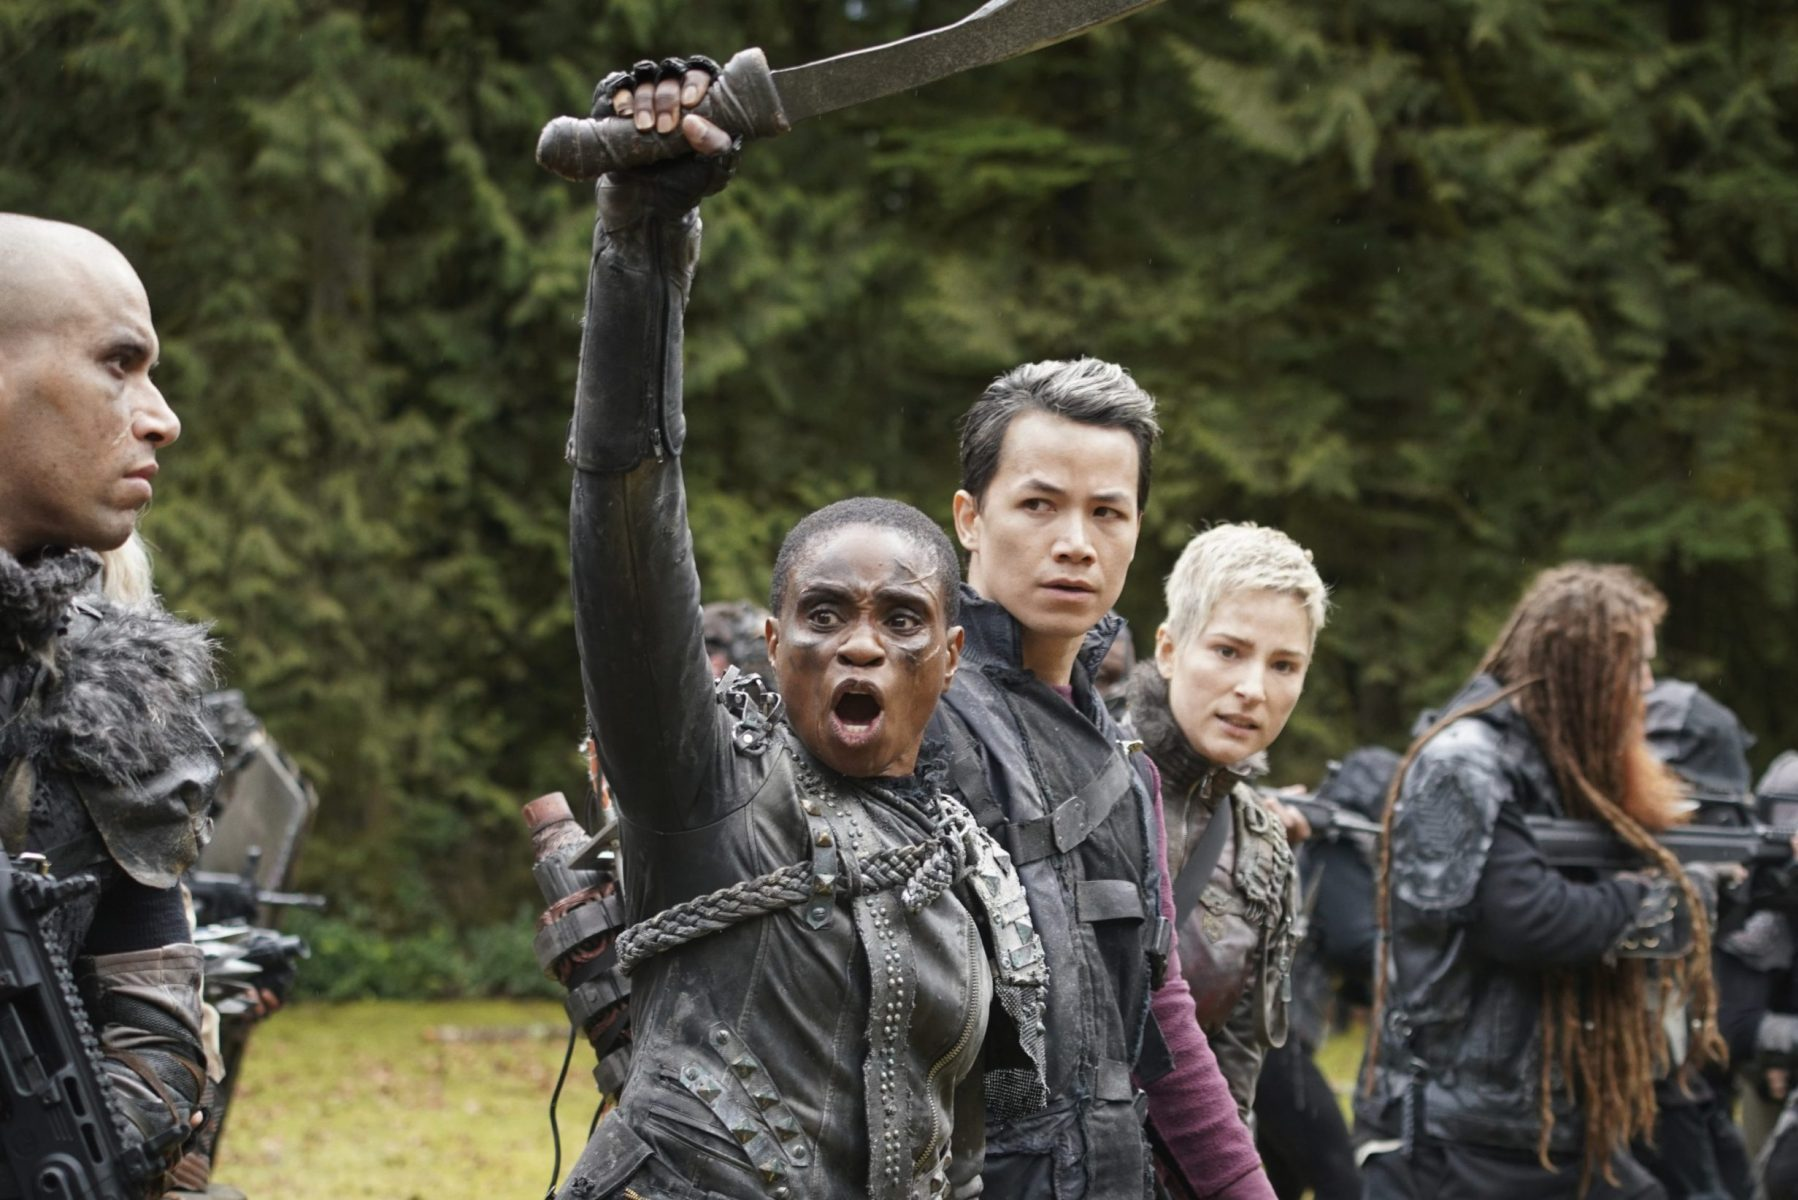 In an article about Lord of the Flies clones, a screenshot from the show The 100